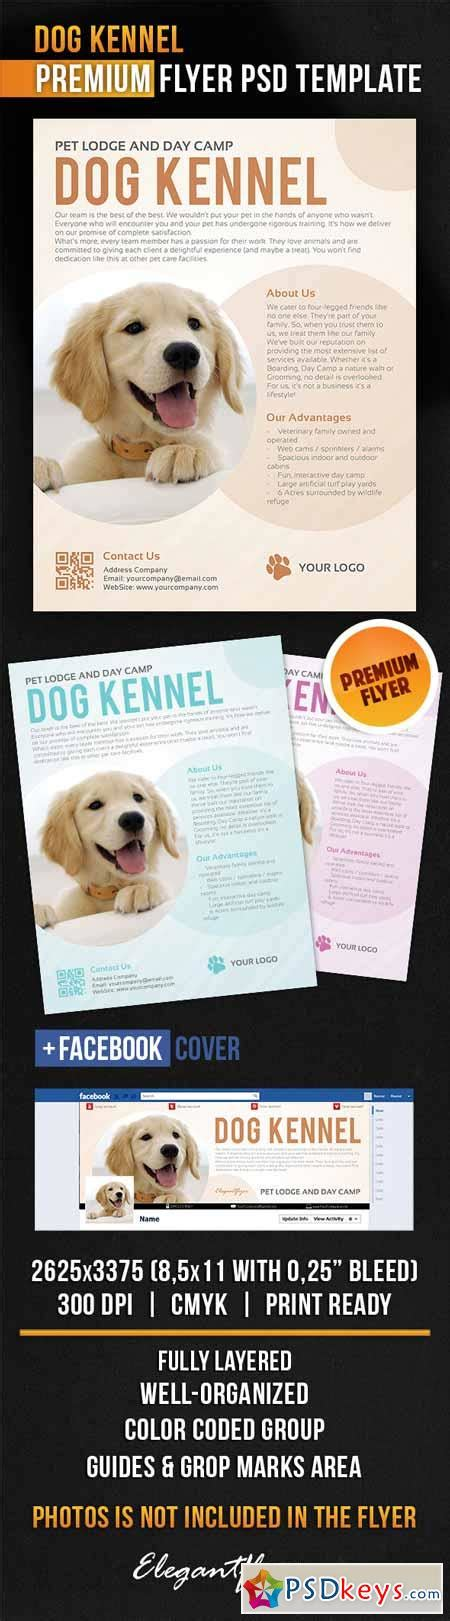 dog kennel flyer psd template facebook cover 187 free